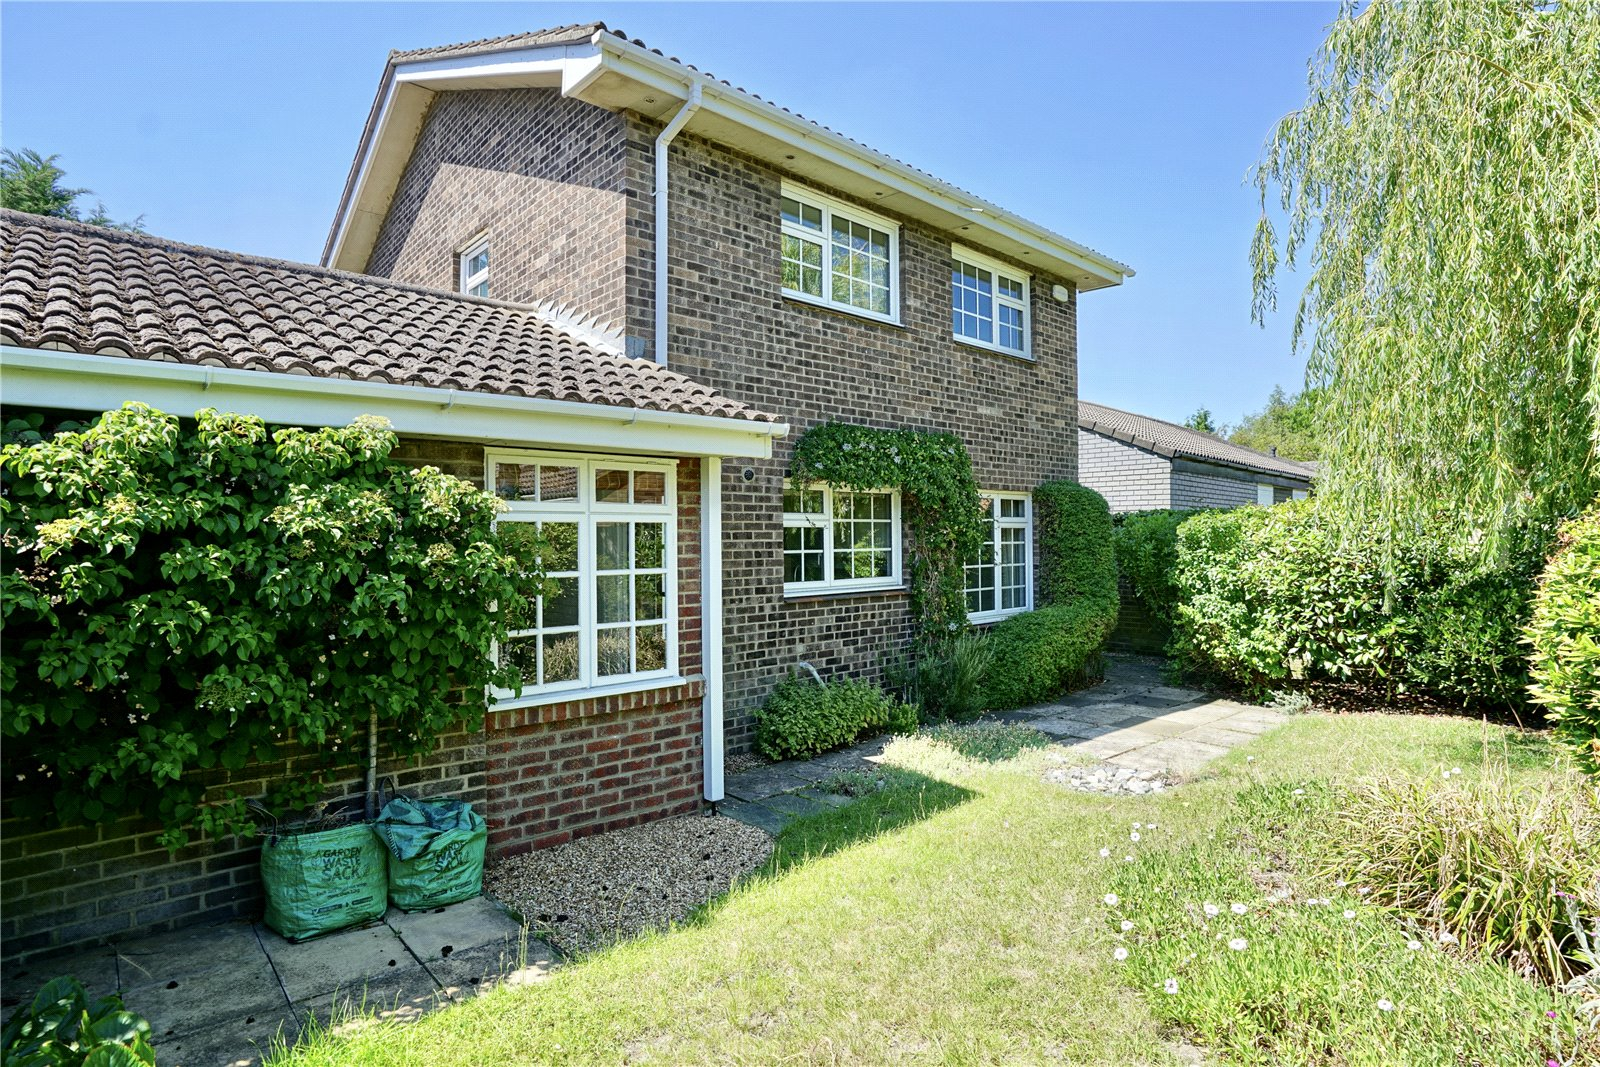 4 bed house for sale in All Hallows, Sandy 11